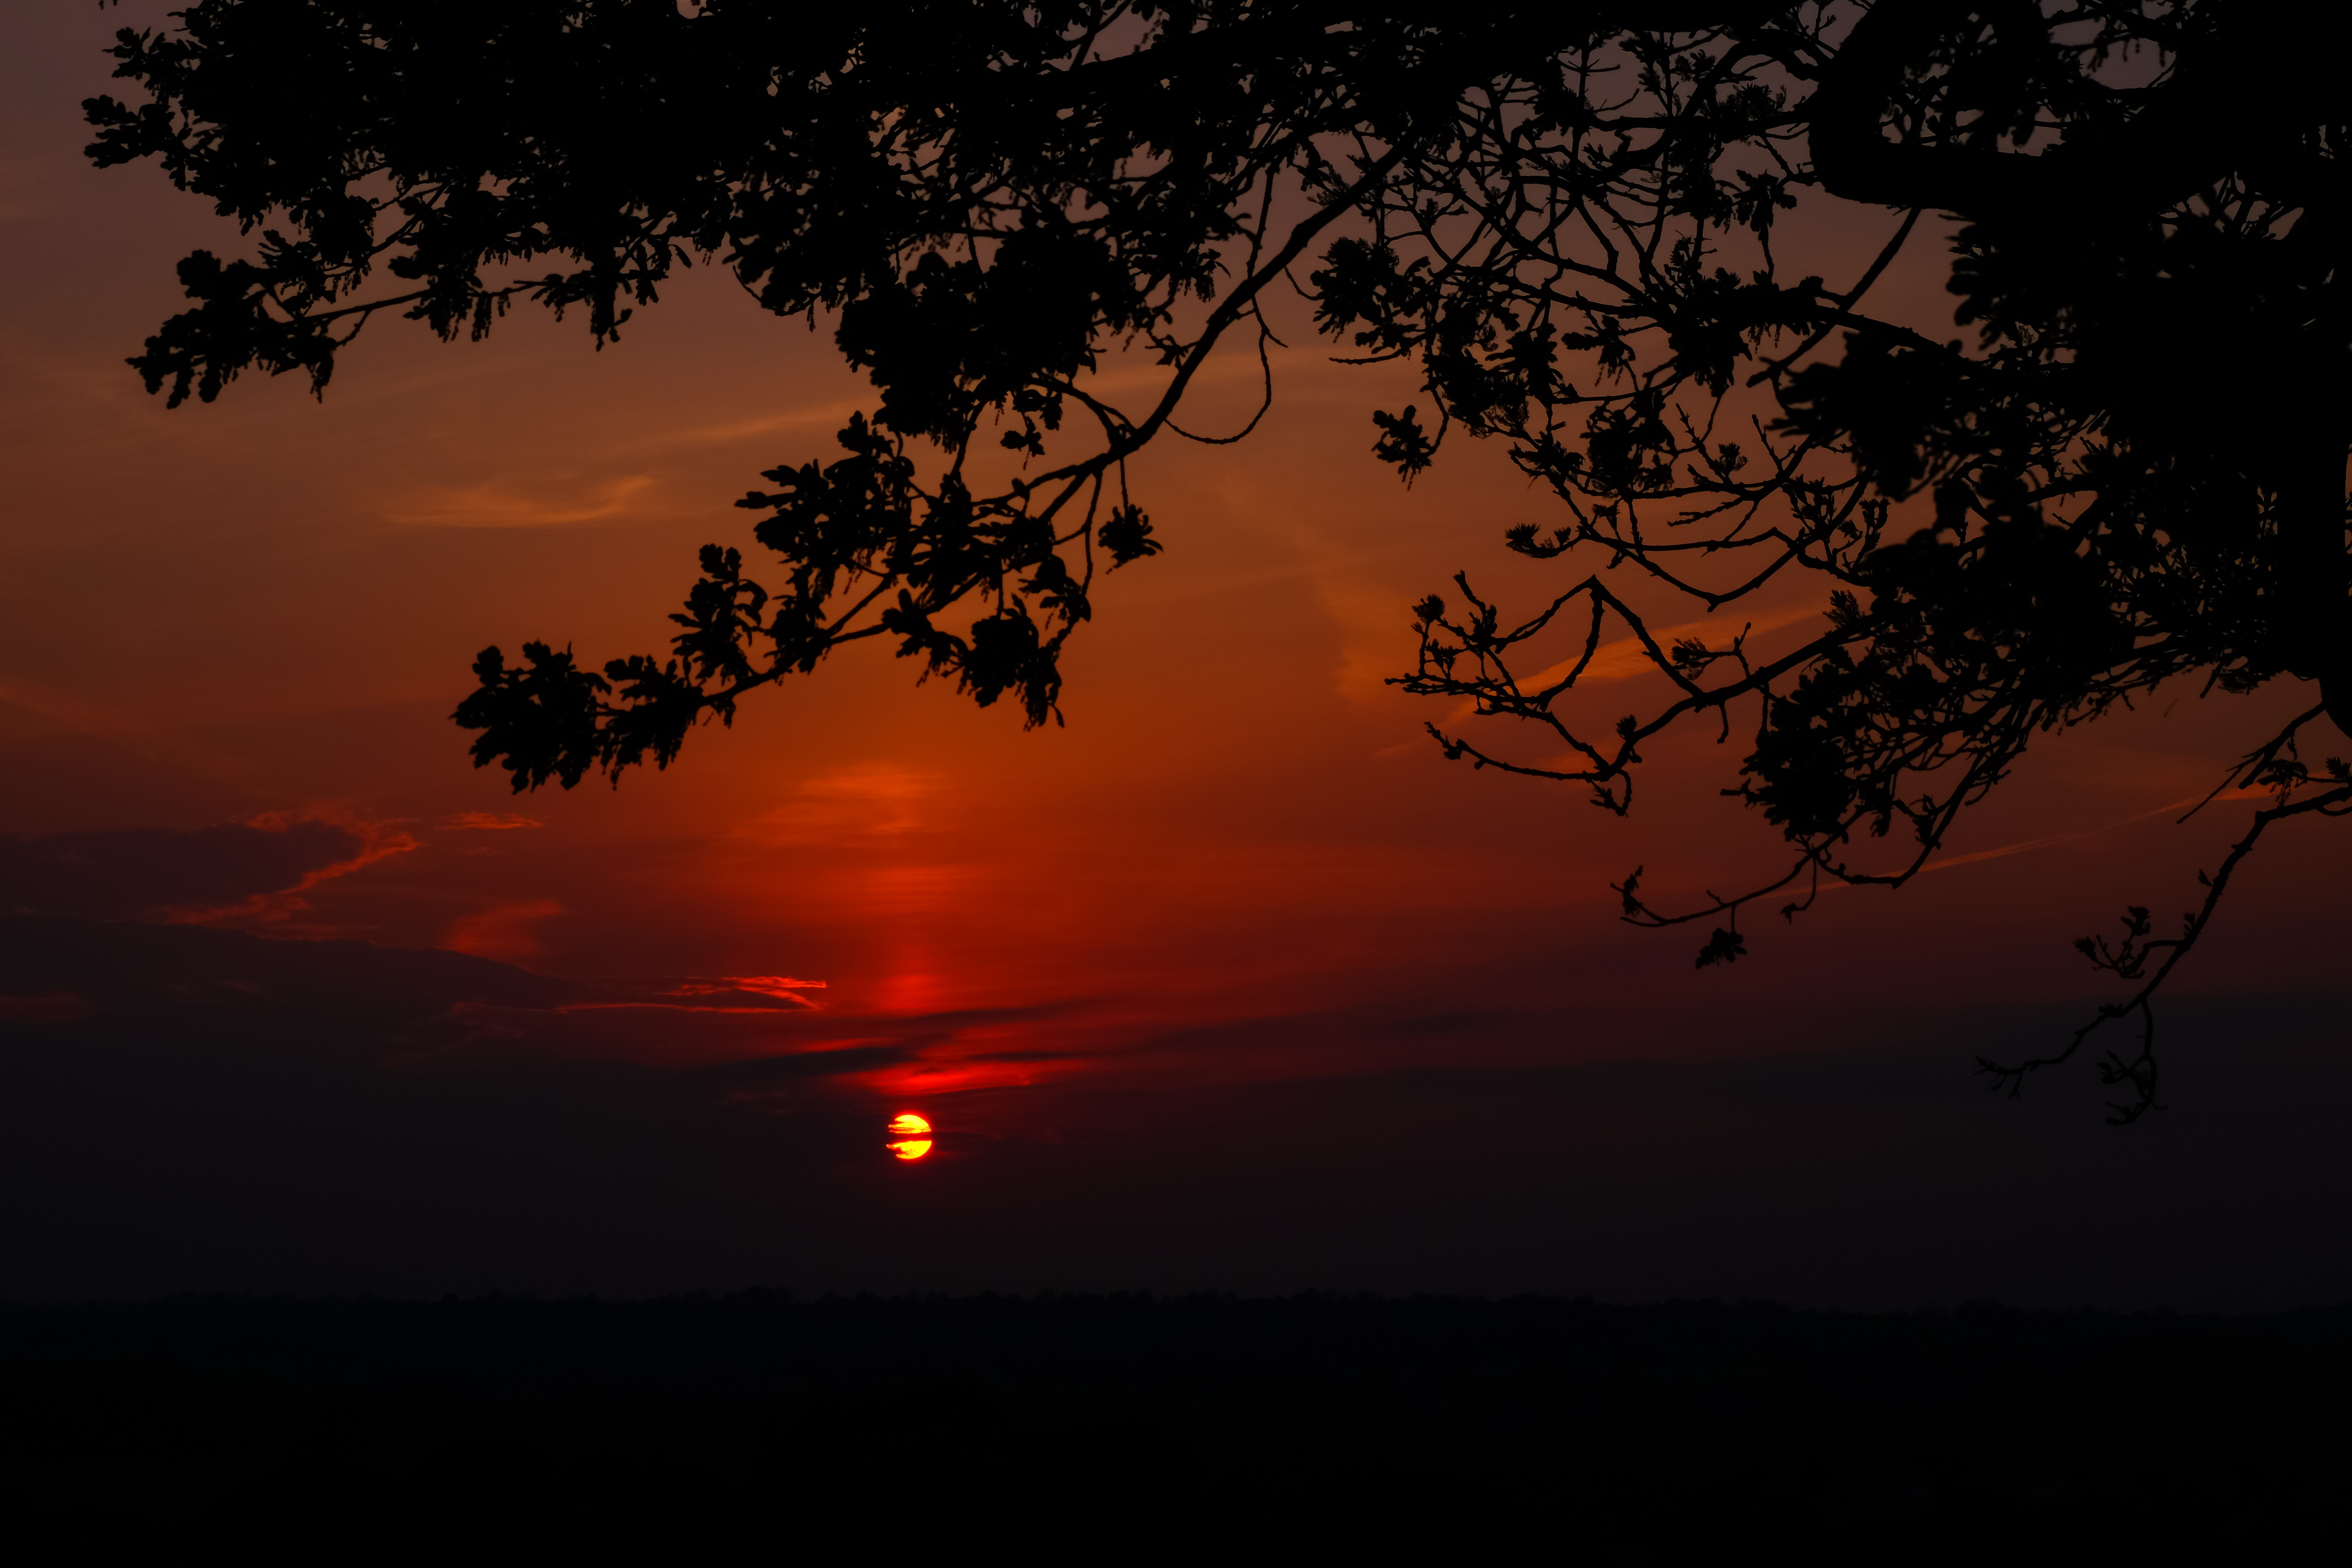 130463 download wallpaper Nature, Sunset, Horizon, Branch, Cloud screensavers and pictures for free